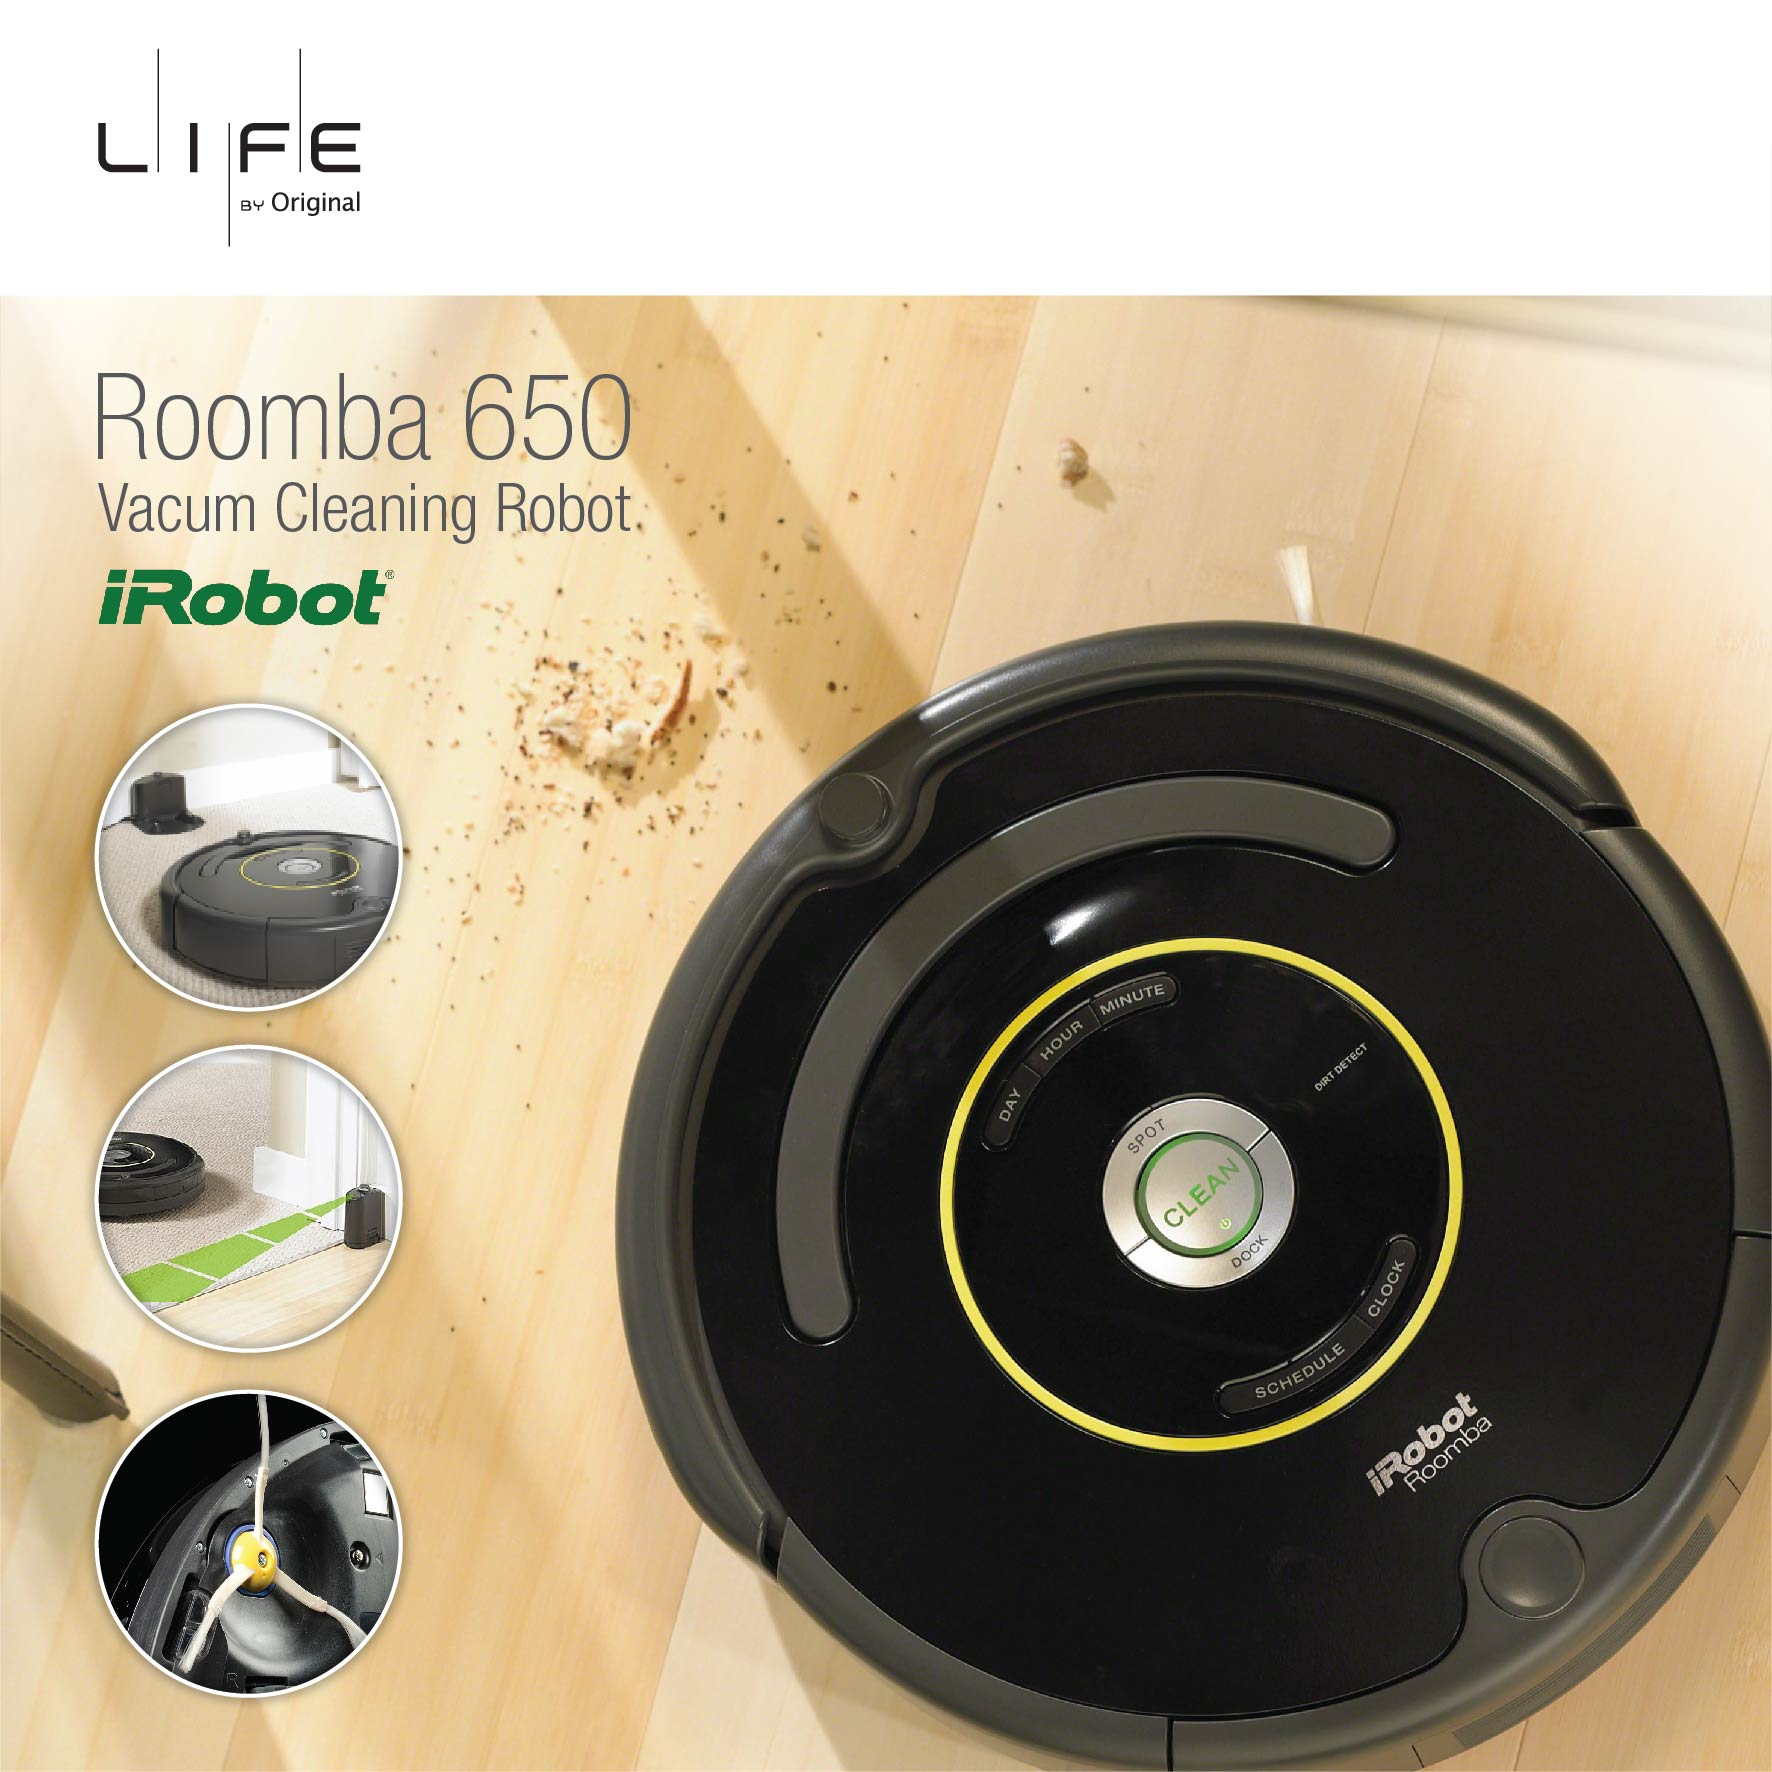 醒目吸塵機械人 - IROBOT ROOMBA 650  唔使你辛苦!唔使驚佢偷懶!iRobot 醒目吸塵機械人-  可按你指令定時定候自動自覺幫你打掃屋企內每一角落,令你可舒舒適適擁有一個一塵不染的家。  iRobot 醒目吸塵機械人為你及你的家人帶來一個舒服潔淨的嶄新家居生活。   SMART VACUUM ROBOTOT - IROBOT ROOMBA 650   Need not be worried that you will get tired or you have hired a lazybone! iRobot Roomba 650 will regularly and voluntarily help you clean every corner of your house according to your instructions, enabling you to have a cozy and spotless home.  iRobot Roomba 650 will provide a clean and comfortable way of life to you and your family.